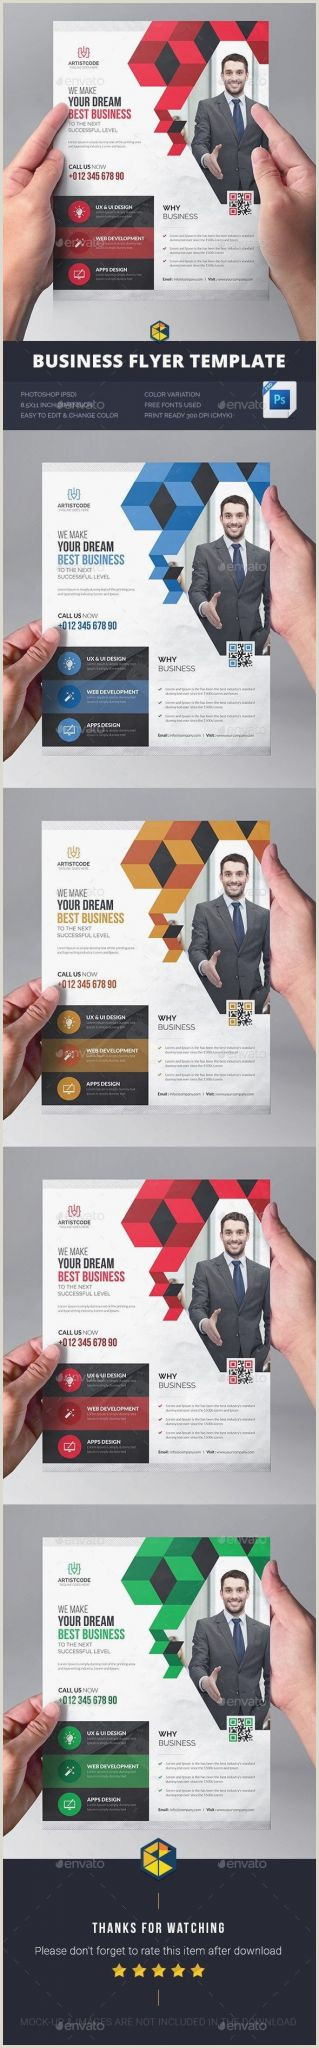 Design Unique Business Cards In Photoshop Herbalife Flyer Template